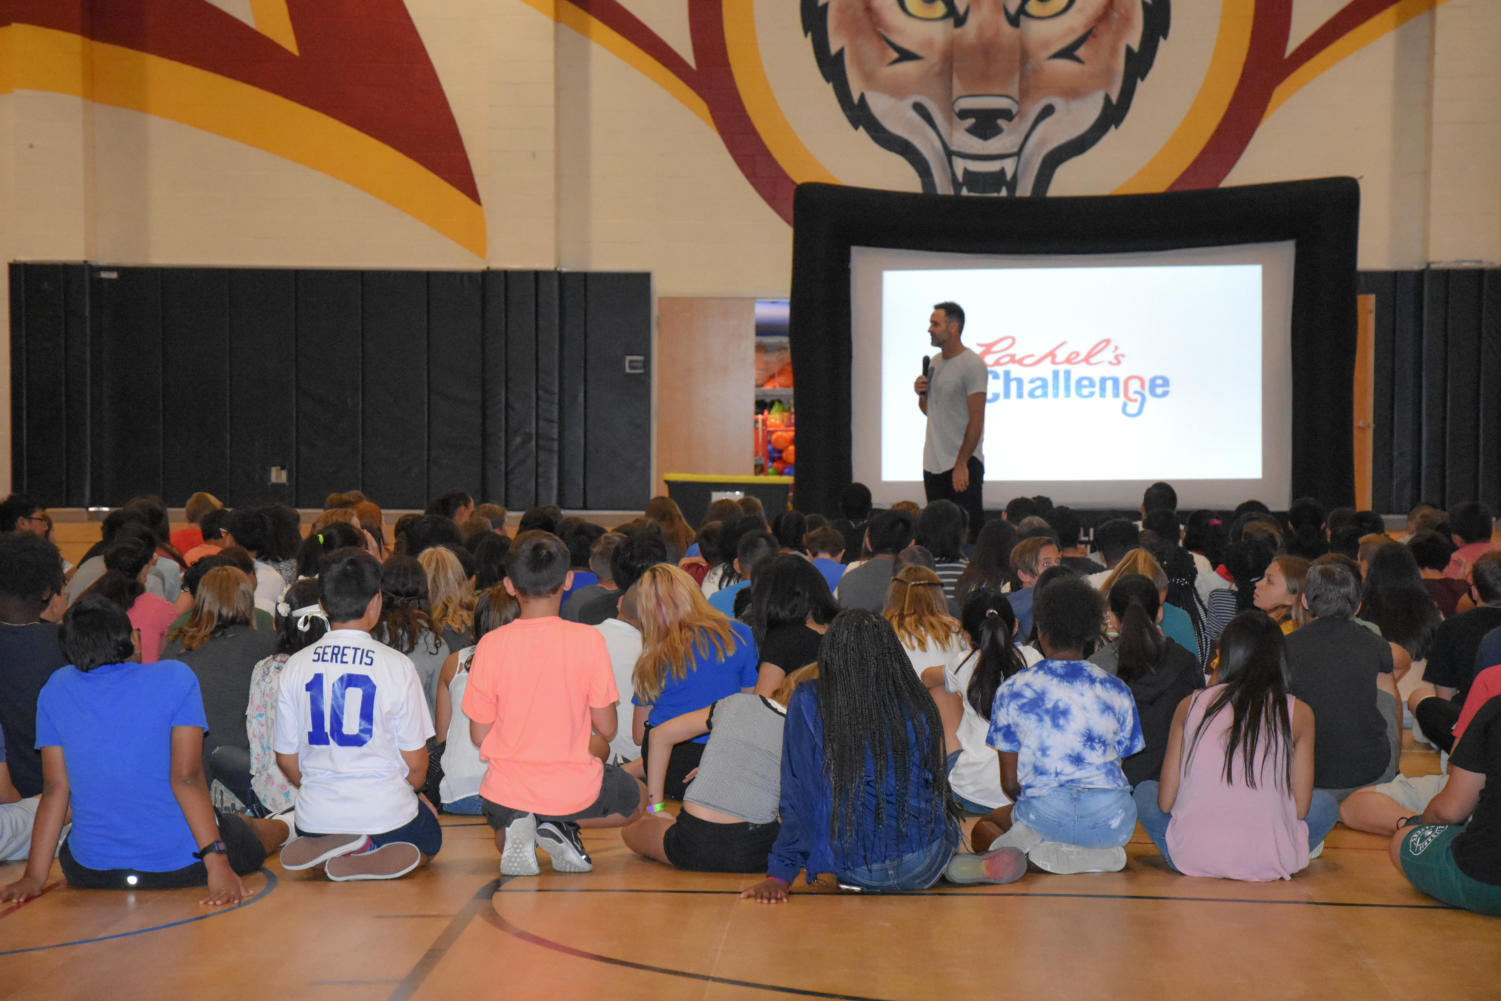 The Rachel's Challenge Assembly gave students here at DCIS a goal of being kind and looking for the best in others.